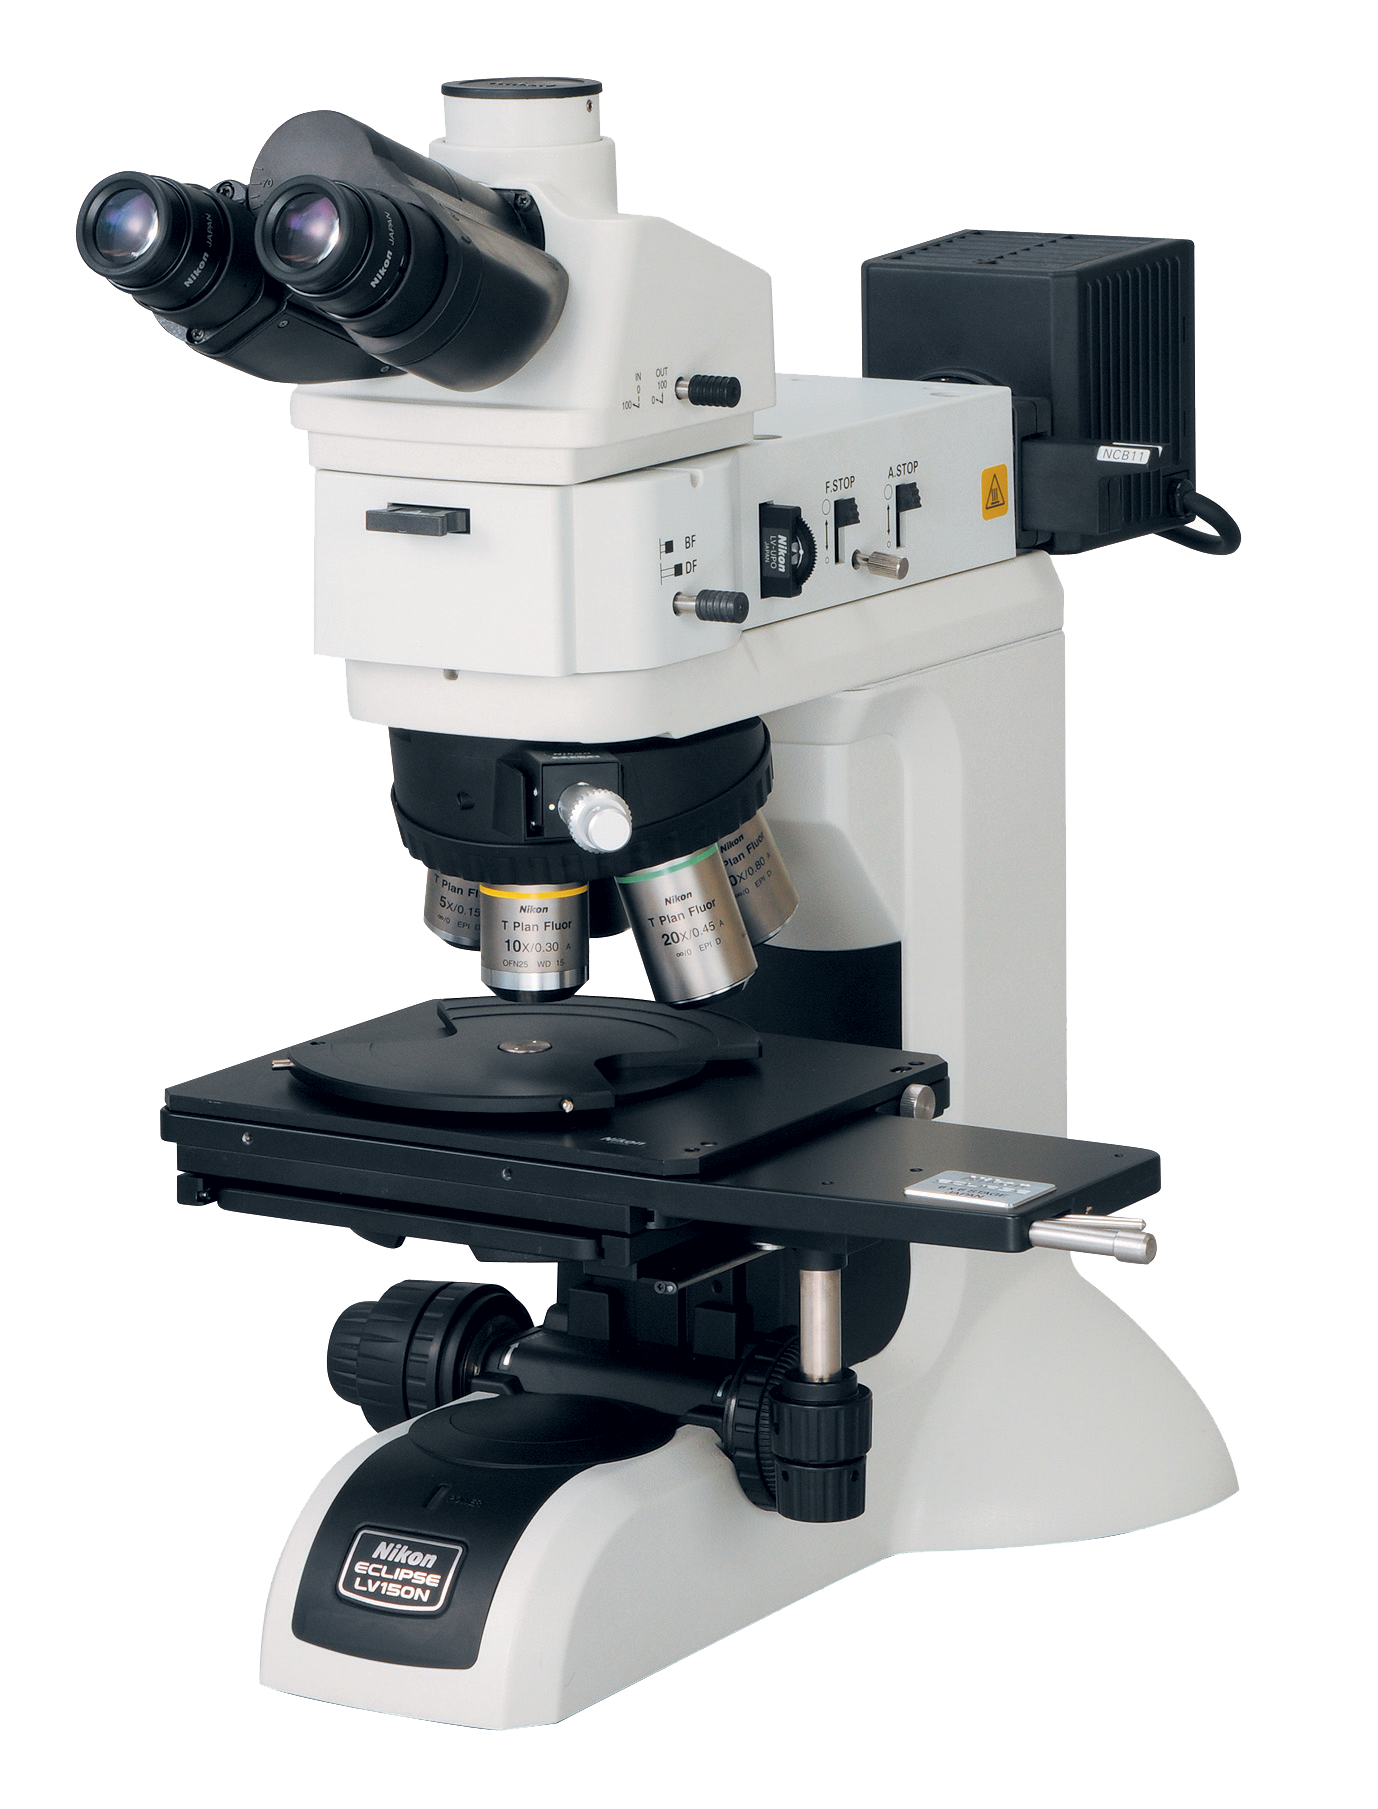 Nikon Eclipse LV150N Industrial Microscopes